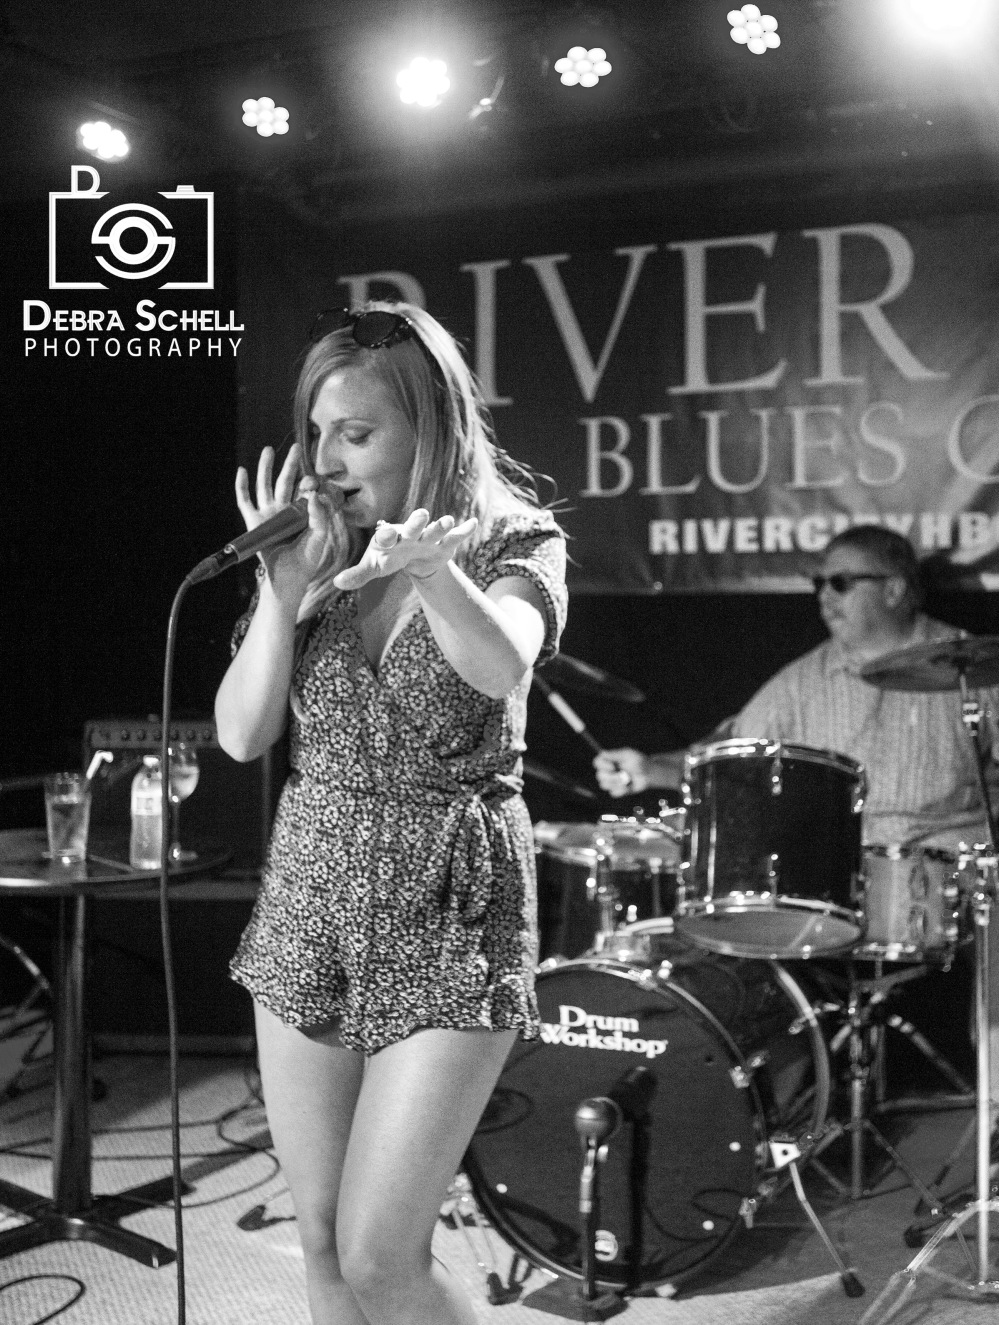 The Groove - Marissa Elise - Vocals Bill Wasch - Guitar, Jay Kirssin - Bass, Ralph Carfagno - Drums